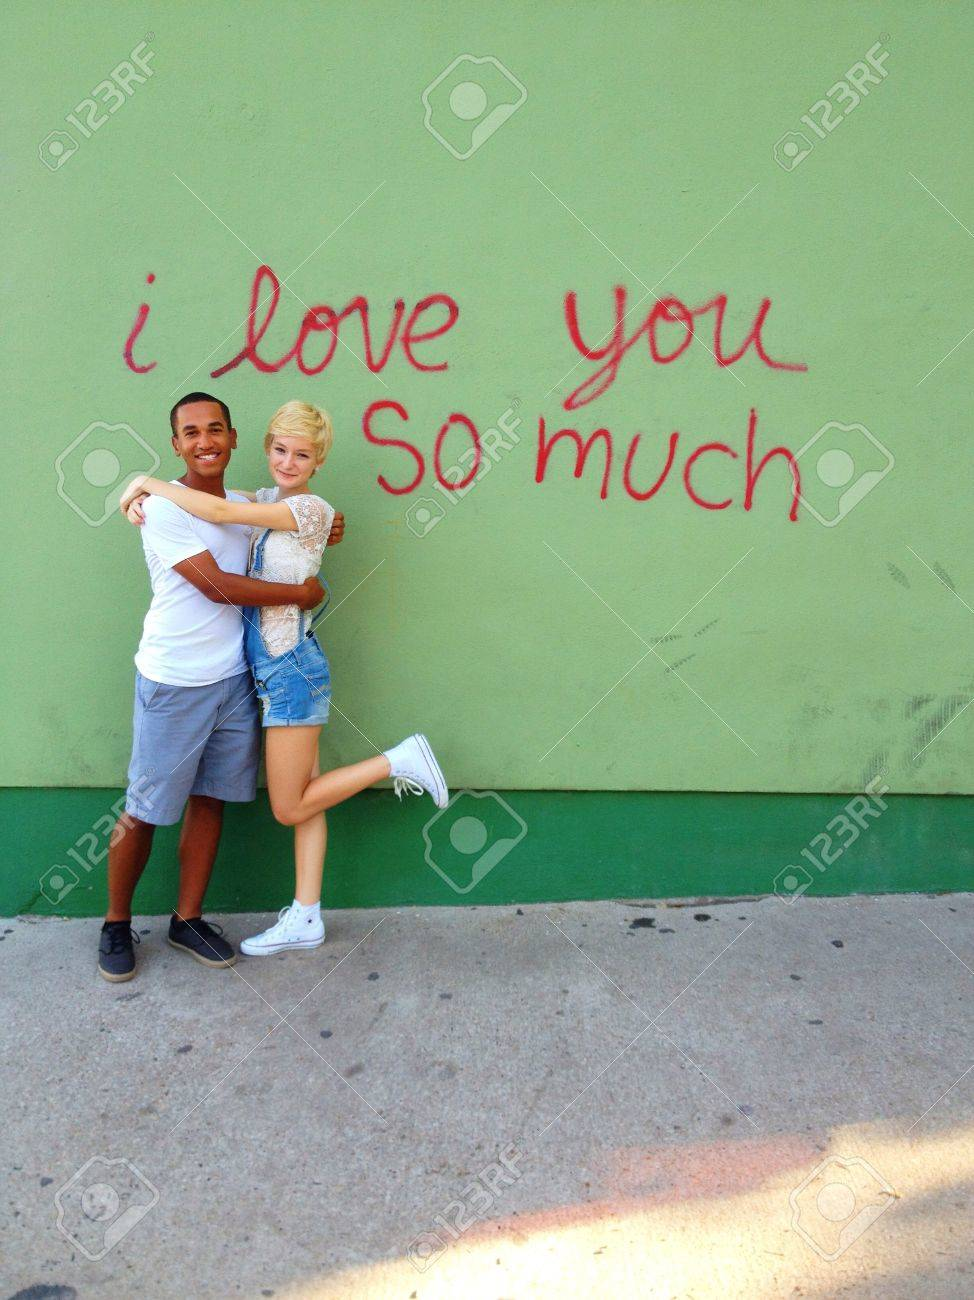 Famous i love you so much graffiti on soco in austin tx stock photo 21370713